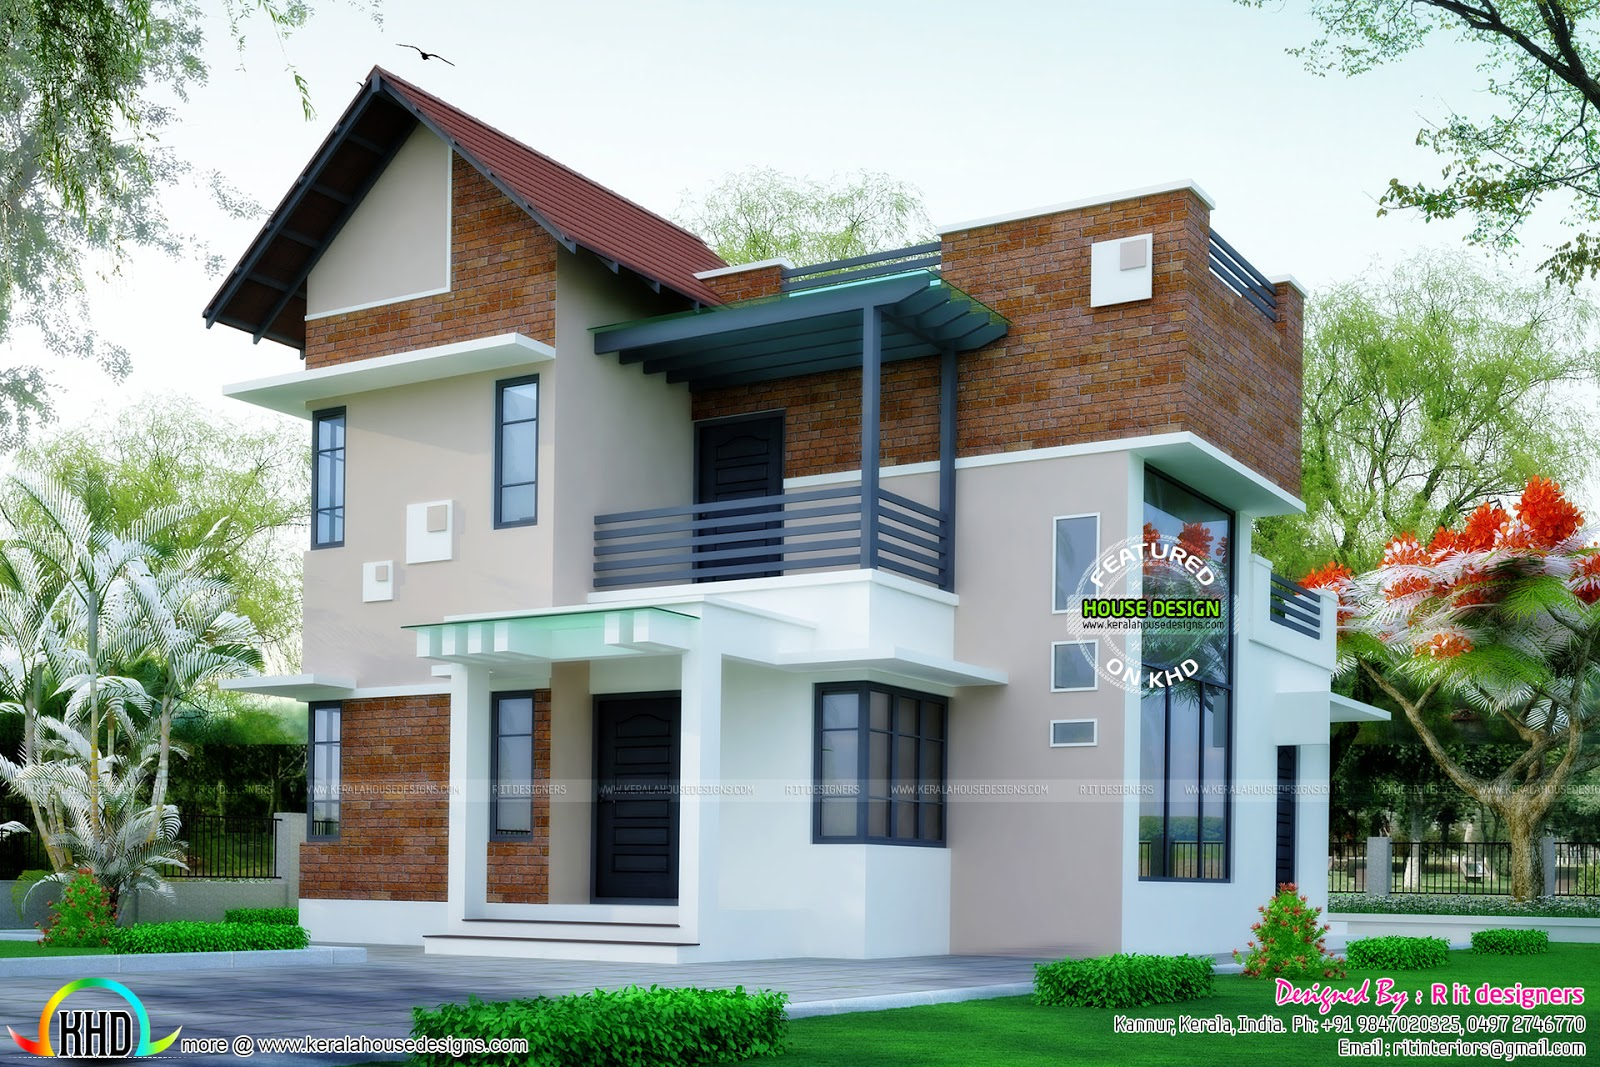 Brick wall mix modern house plan kerala home design and for Home house design